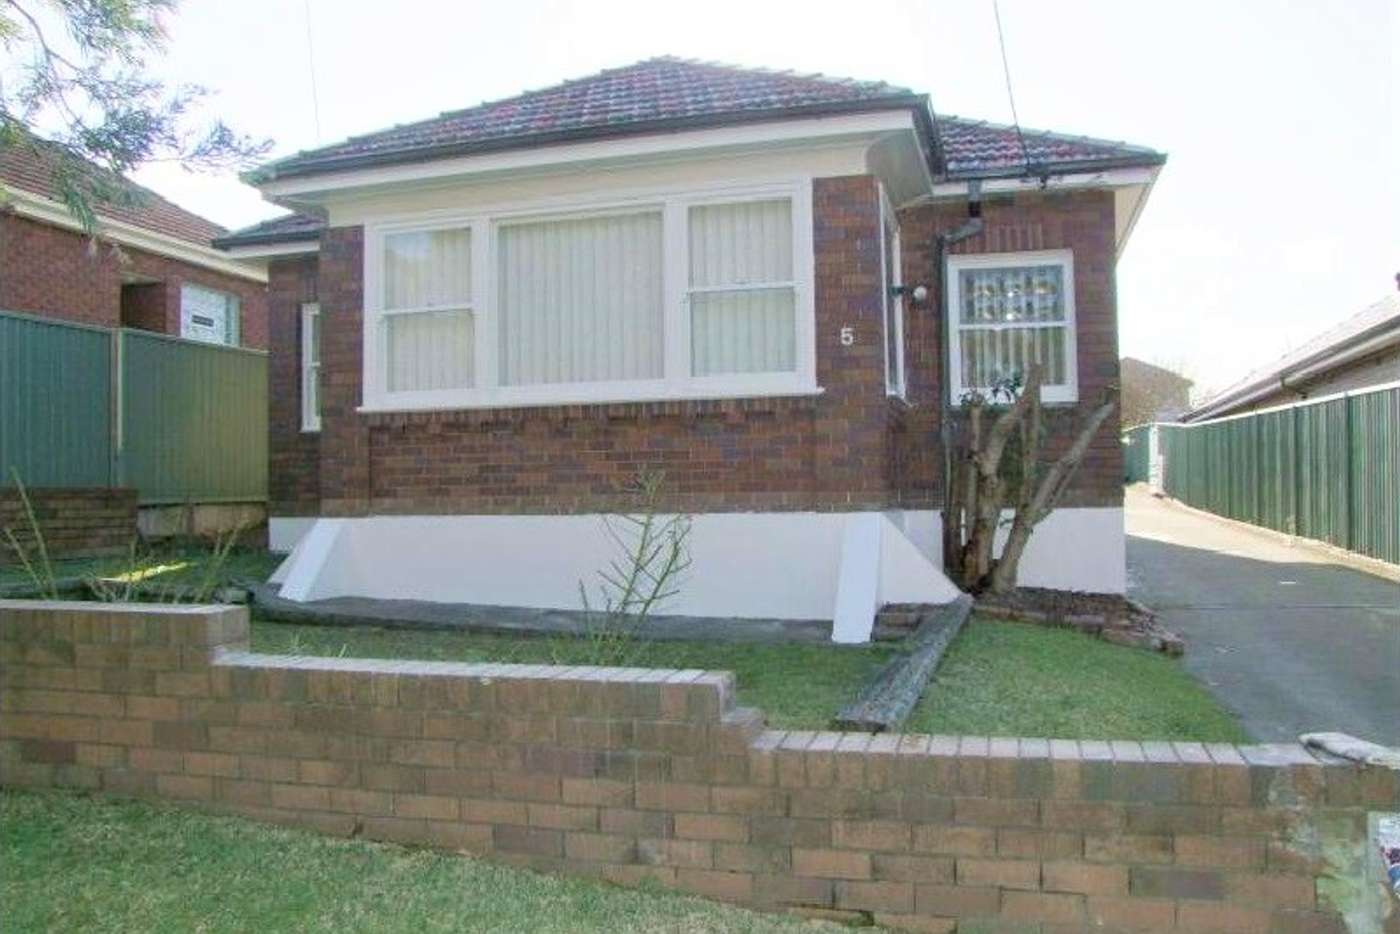 Main view of Homely house listing, 5 Ada Street, Bexley NSW 2207